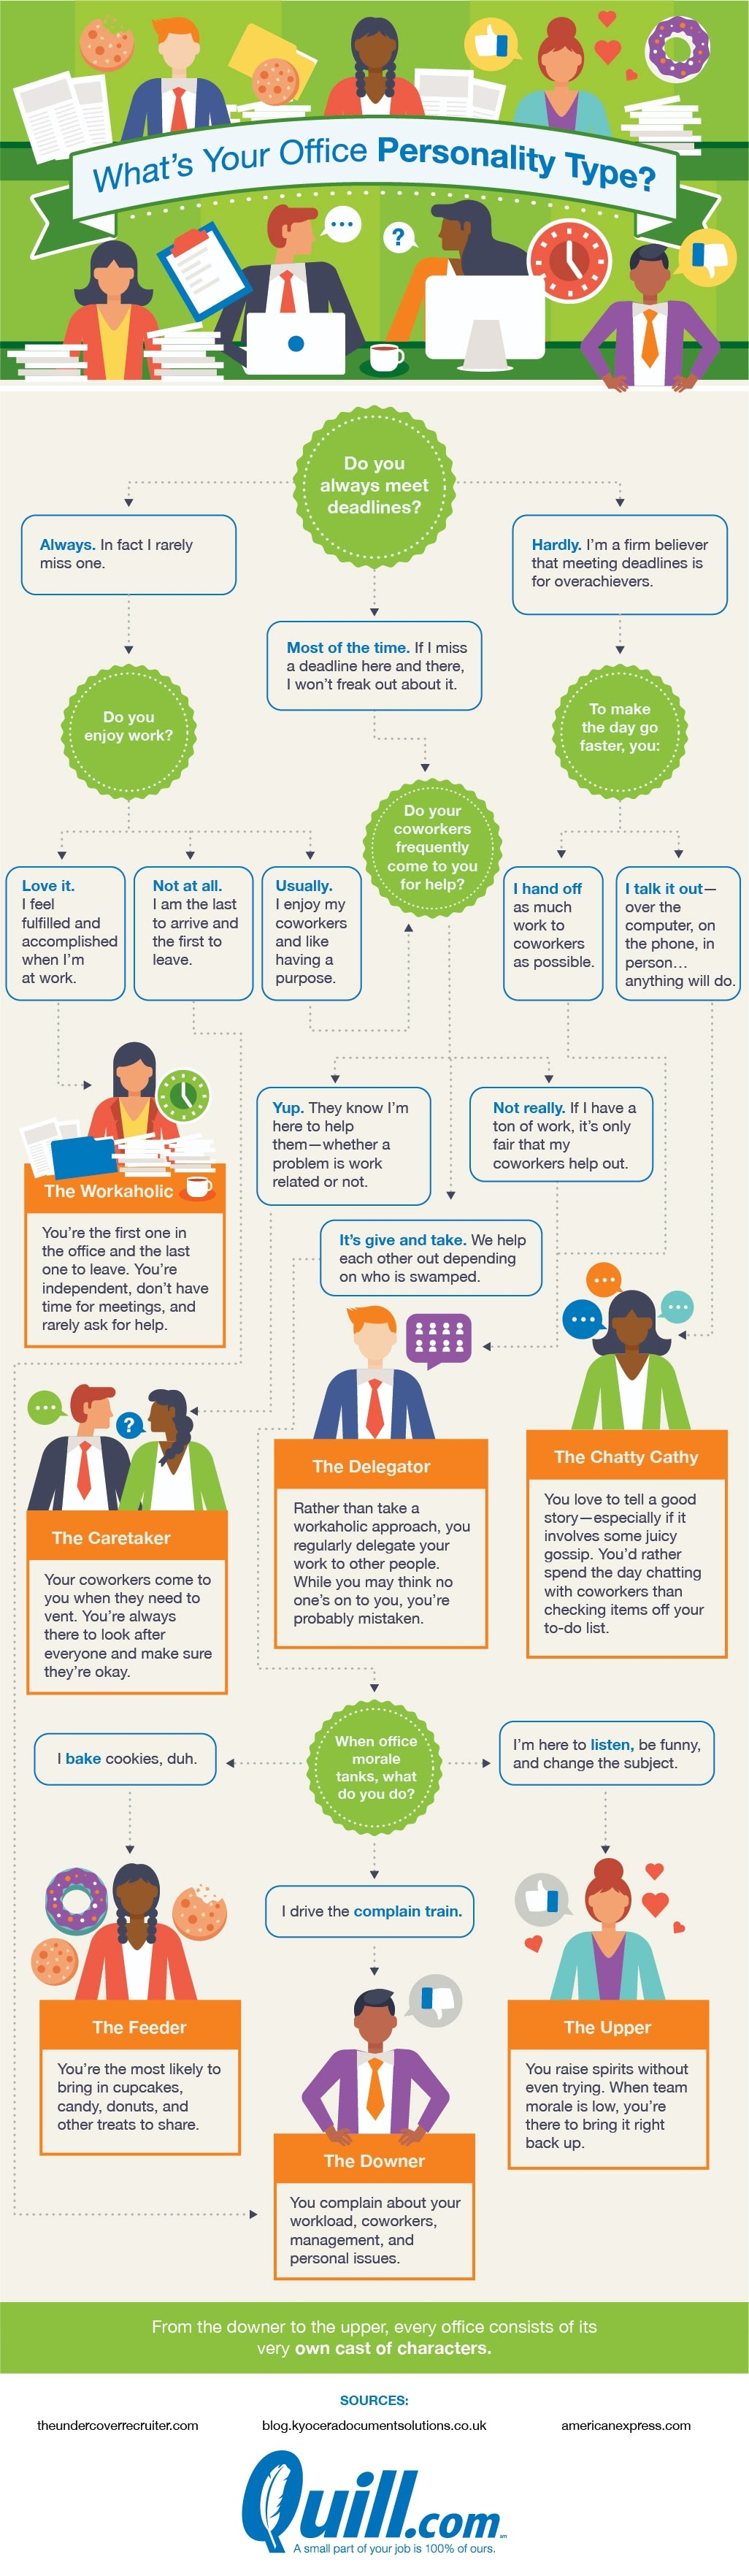 Whats Your Office Personality Type?   TFE Times